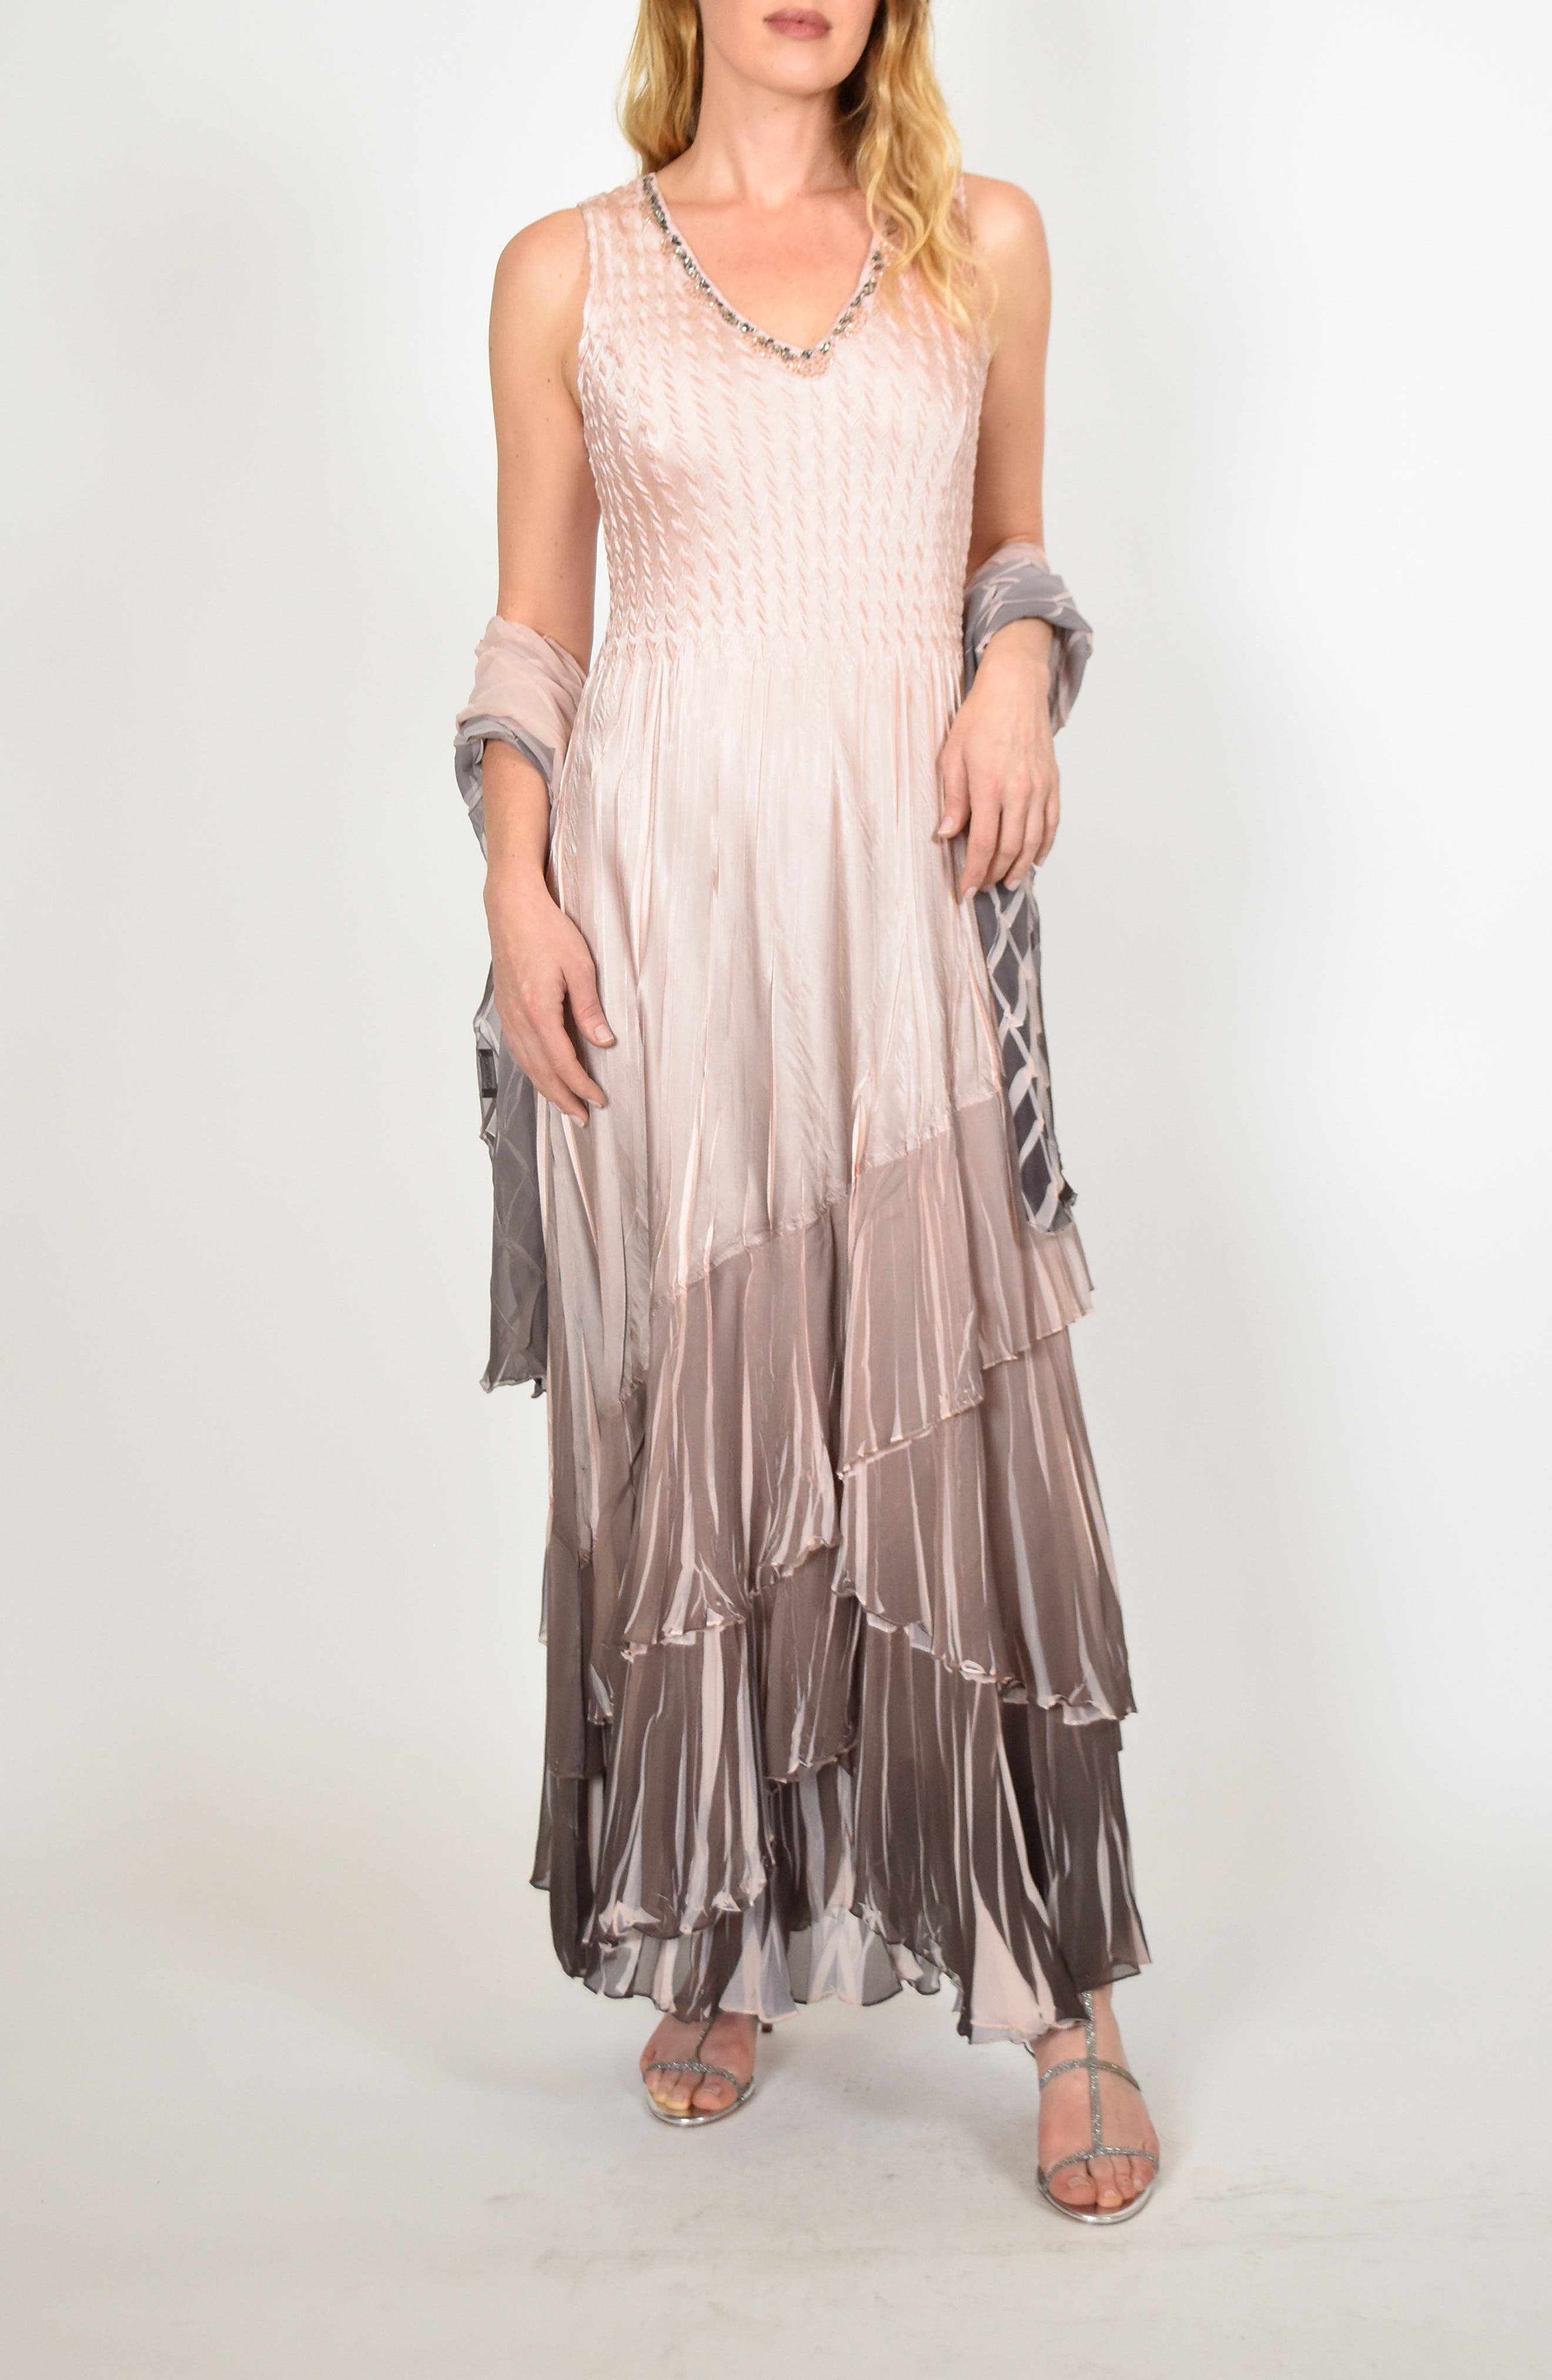 KOMAROV, Layered Maxi Dress with Wrap, Main thumbnail 1, color, VINTAGE ROSE CAFE OMBRE